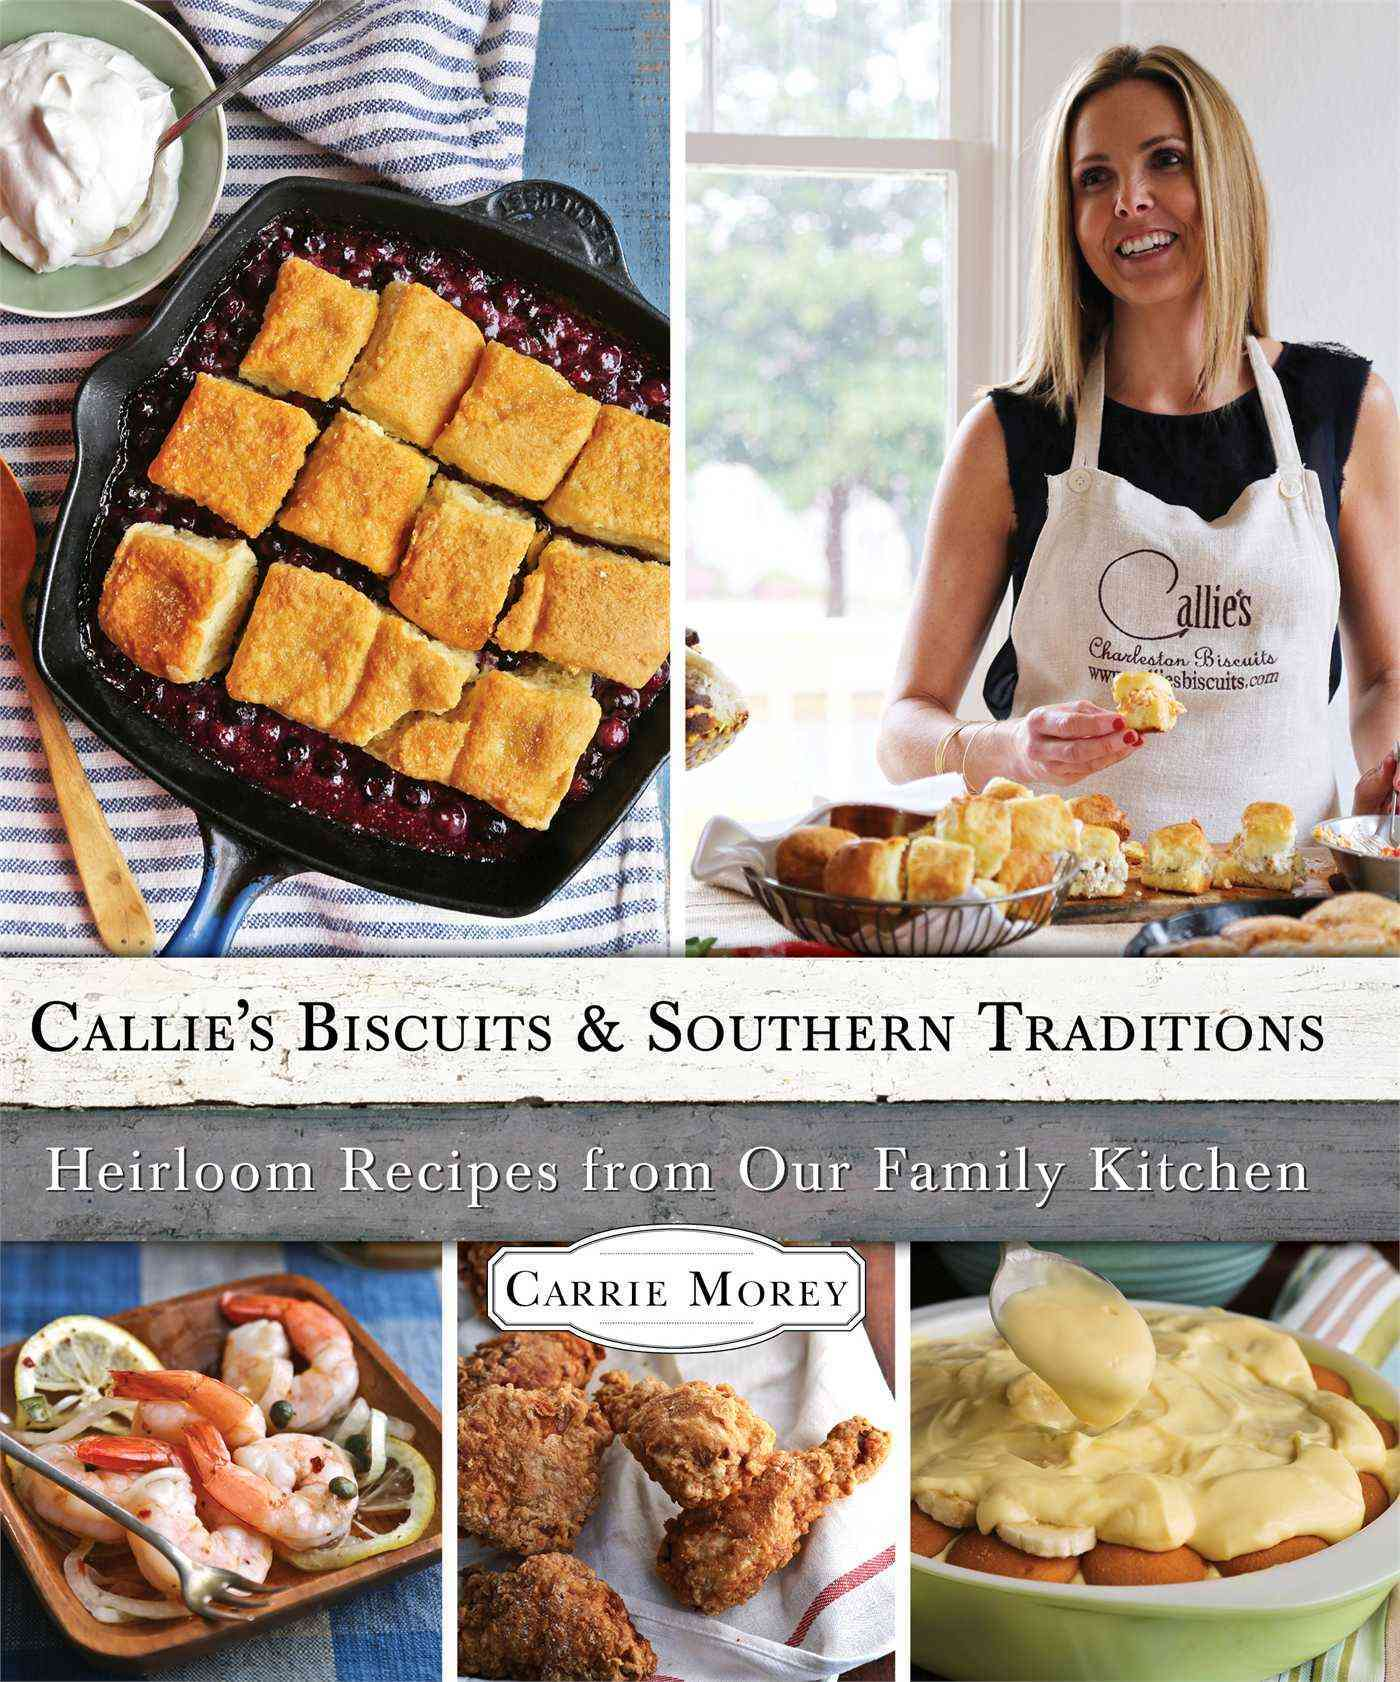 Callie's Biscuits and Southern Traditions: Heirloom Recipes from Our Family Kitchen (Hardcover)